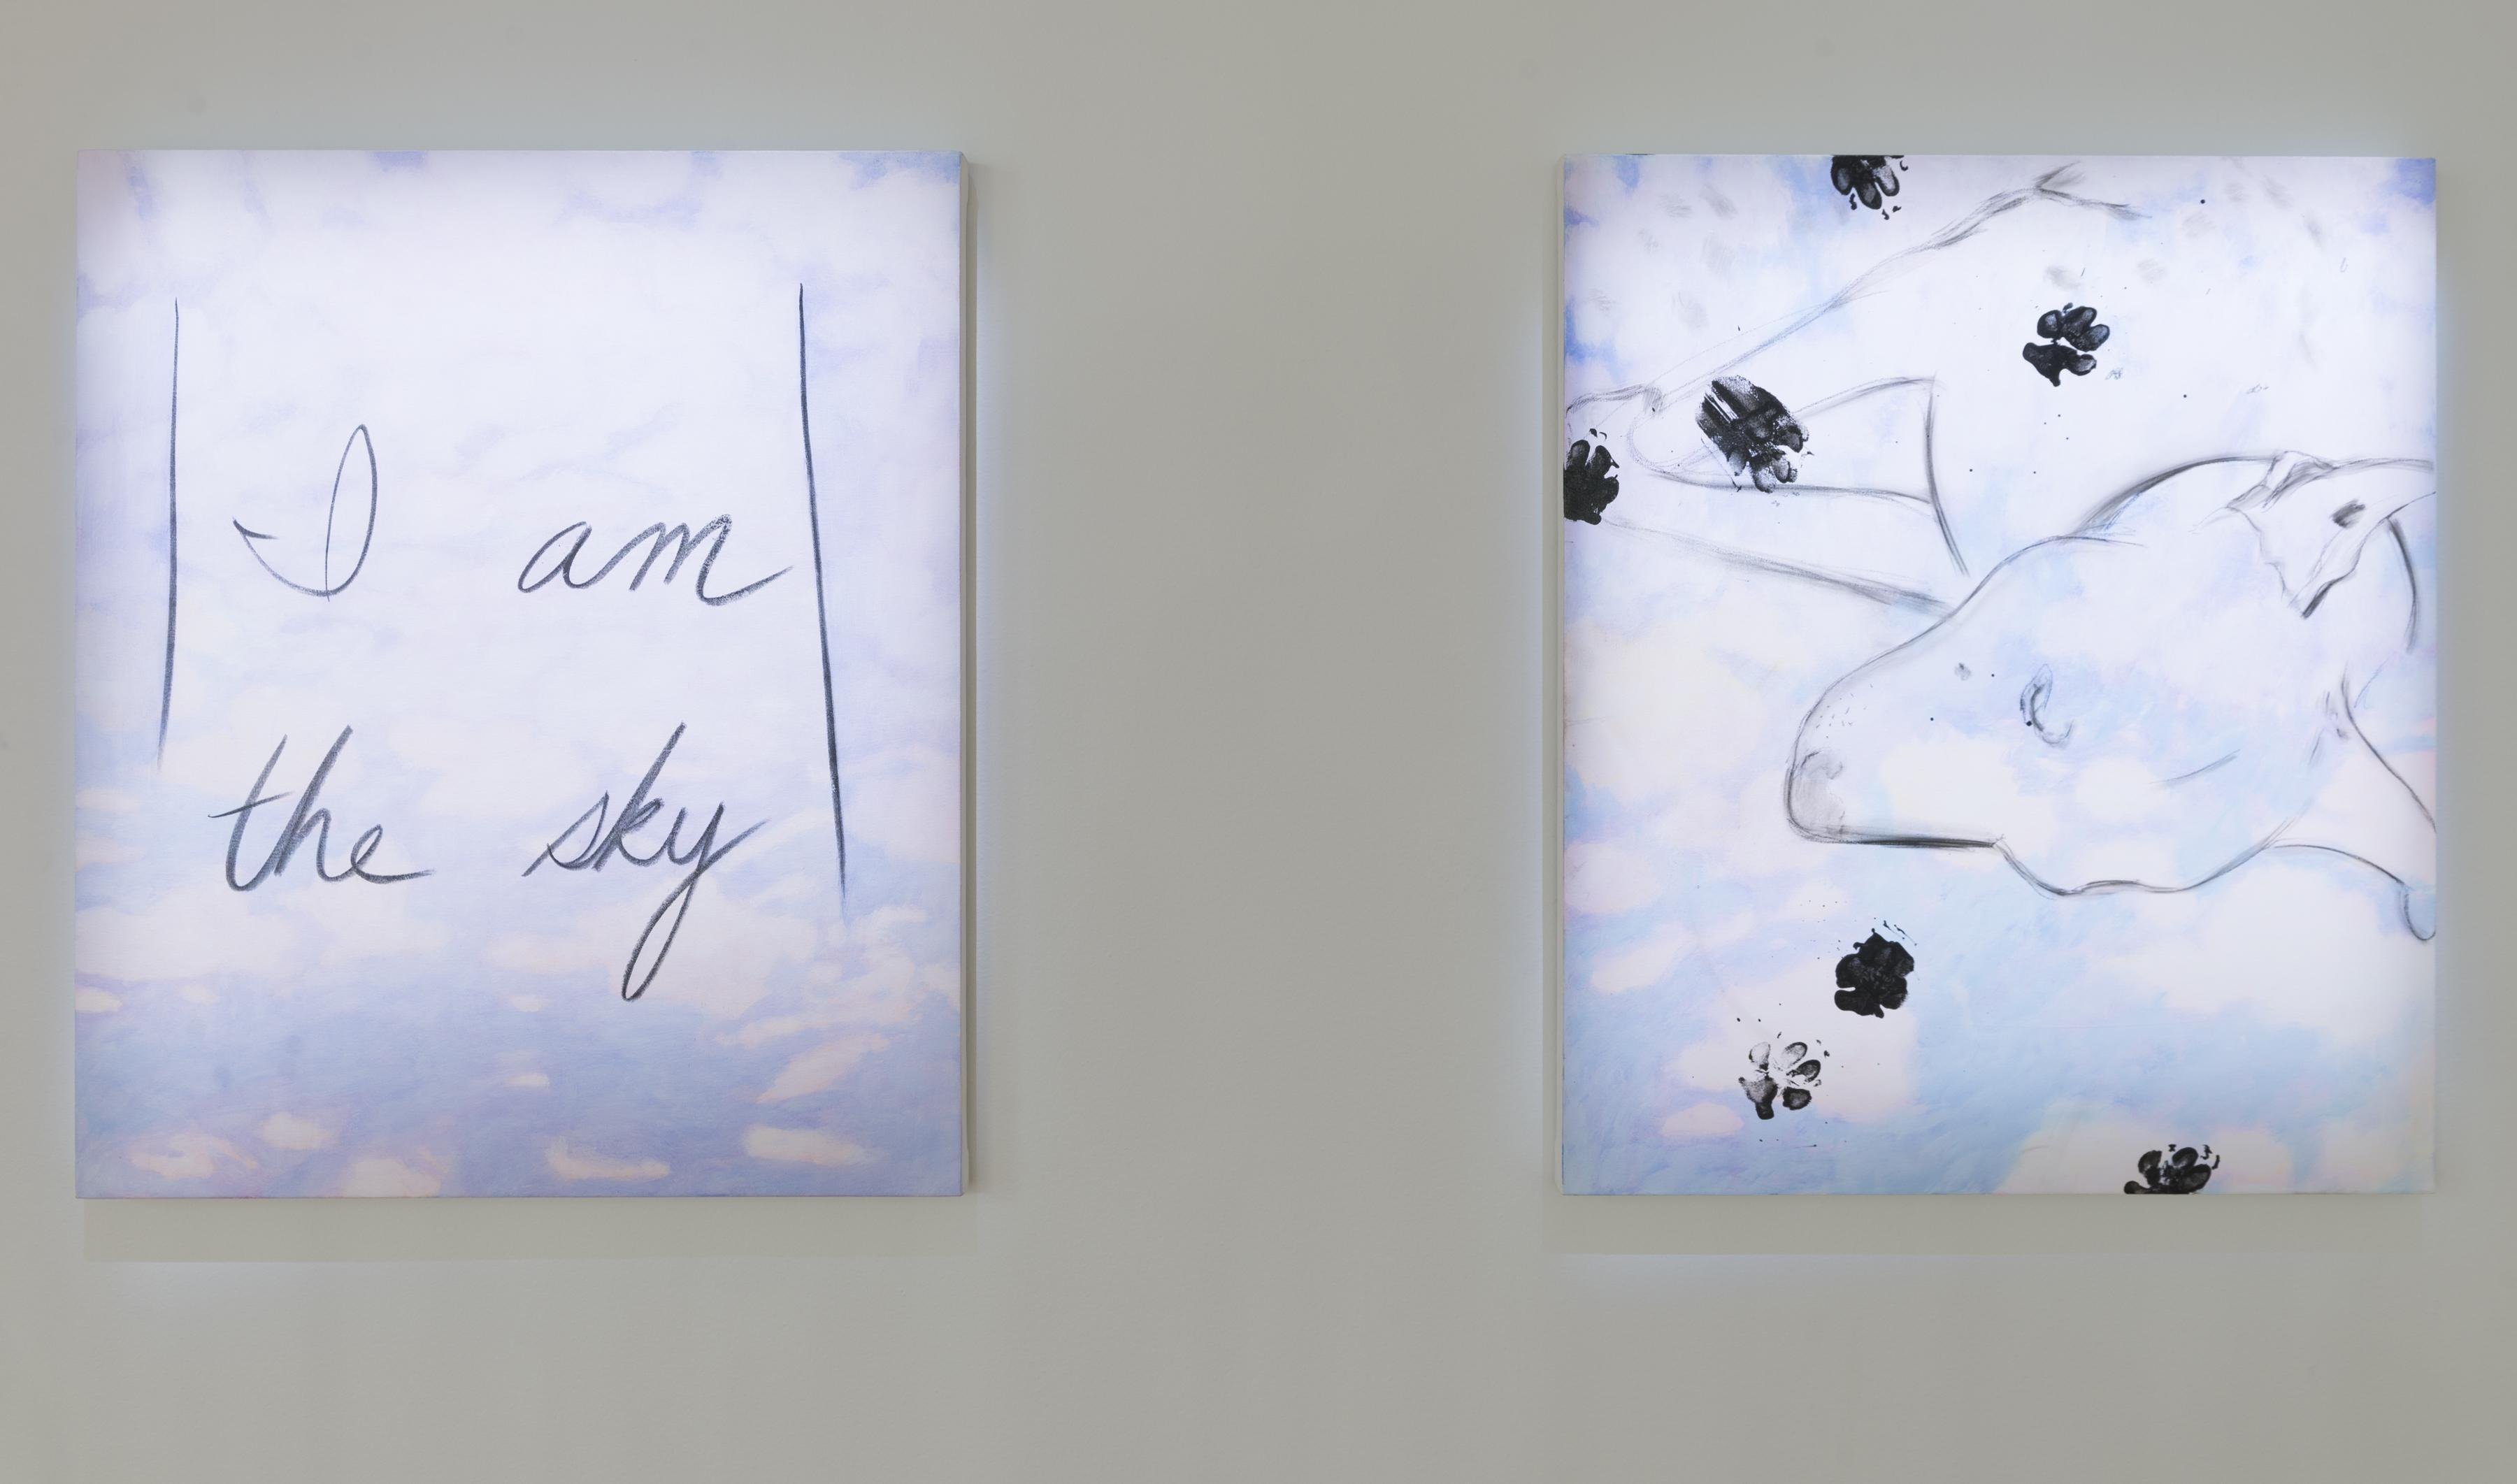 """Two paintings of idyllic cloudy blue skies hang side by side. One reads """"I am the sky"""" and the other outlines a sleeping dog overlapped with inky paw prints."""